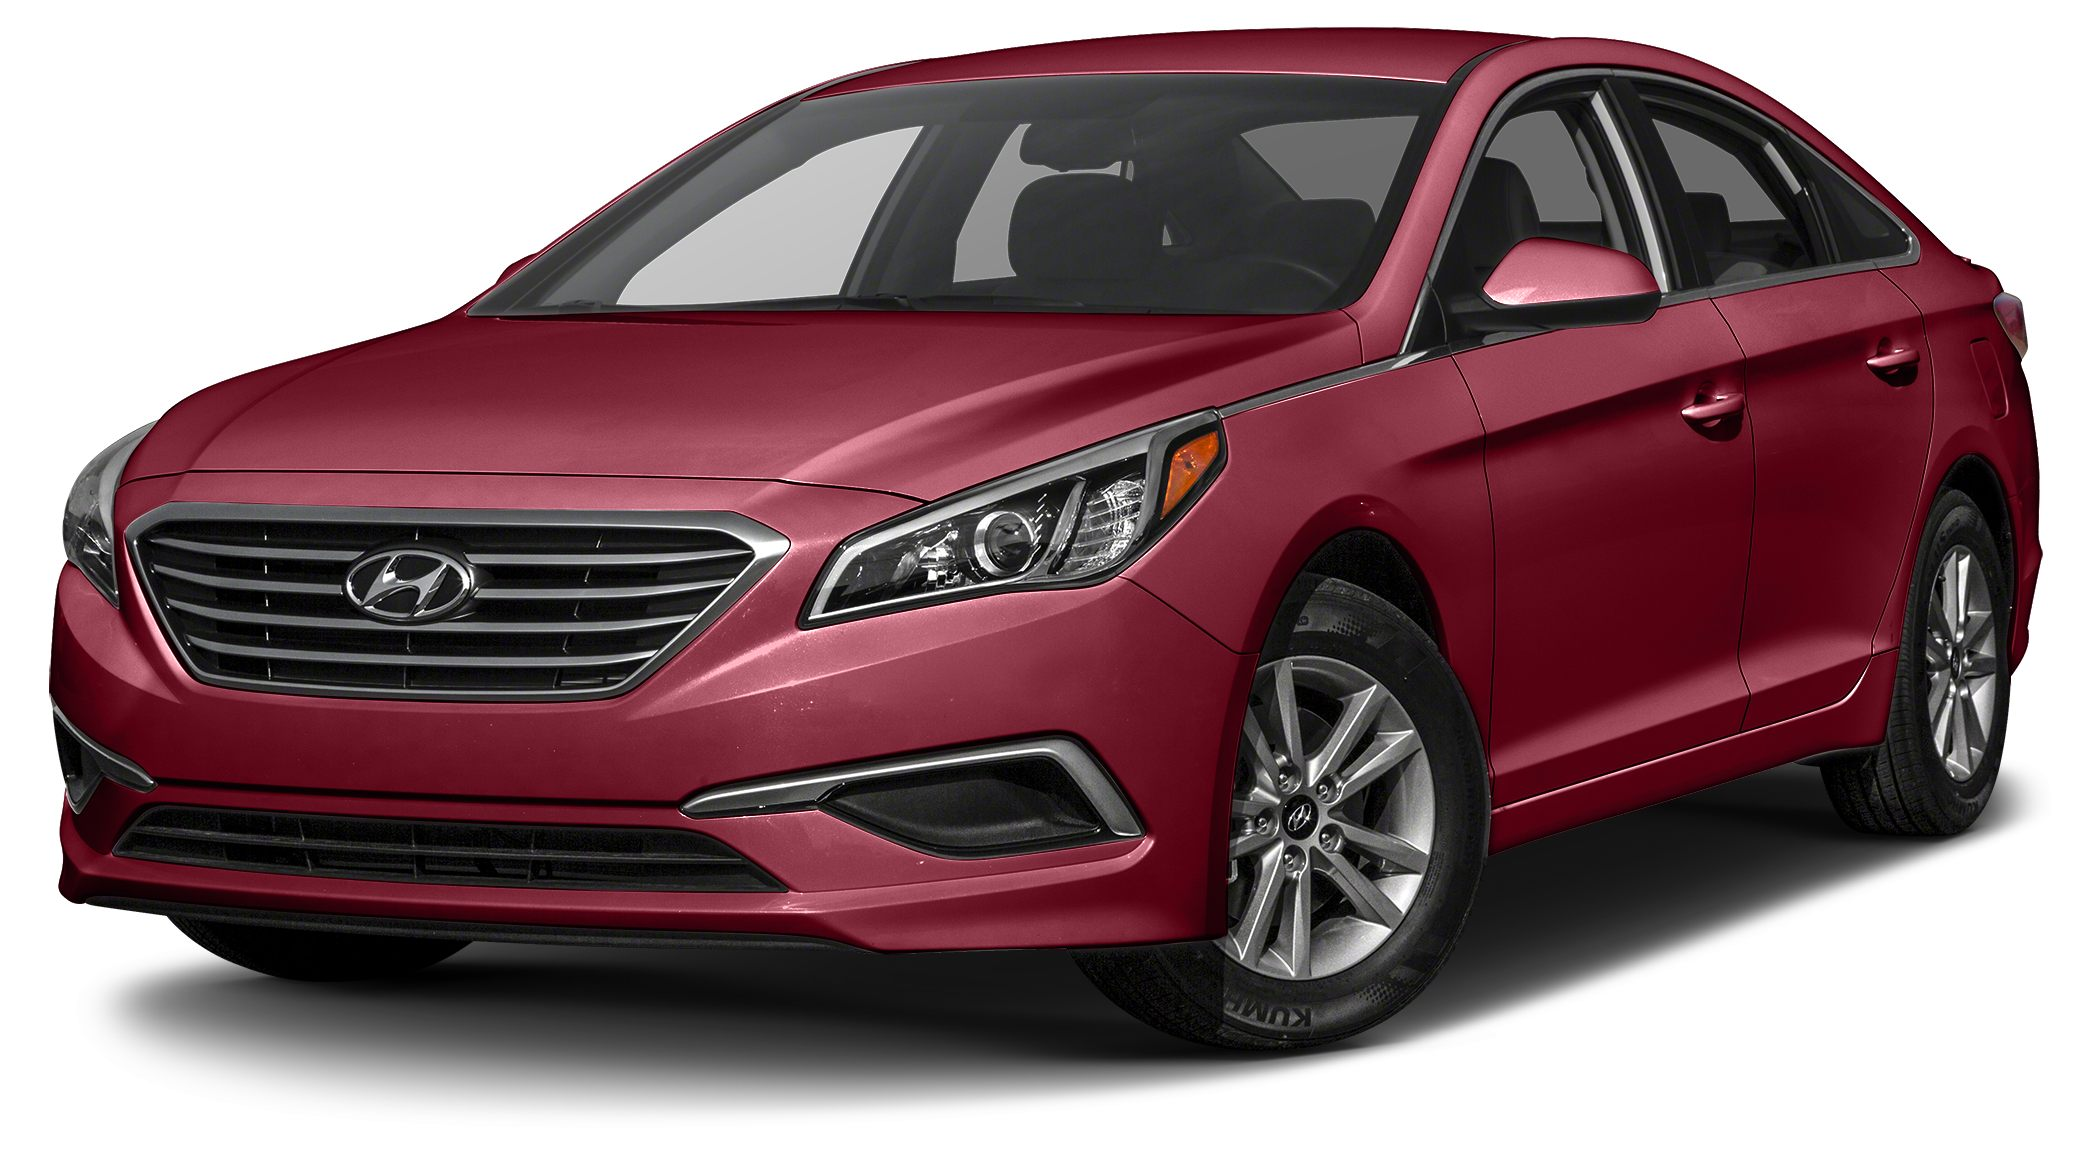 2016 Hyundai Sonata SE Bluetooth Miles 11Color Venetian Red Stock 14636 VIN 5NPE24AF1GH4340